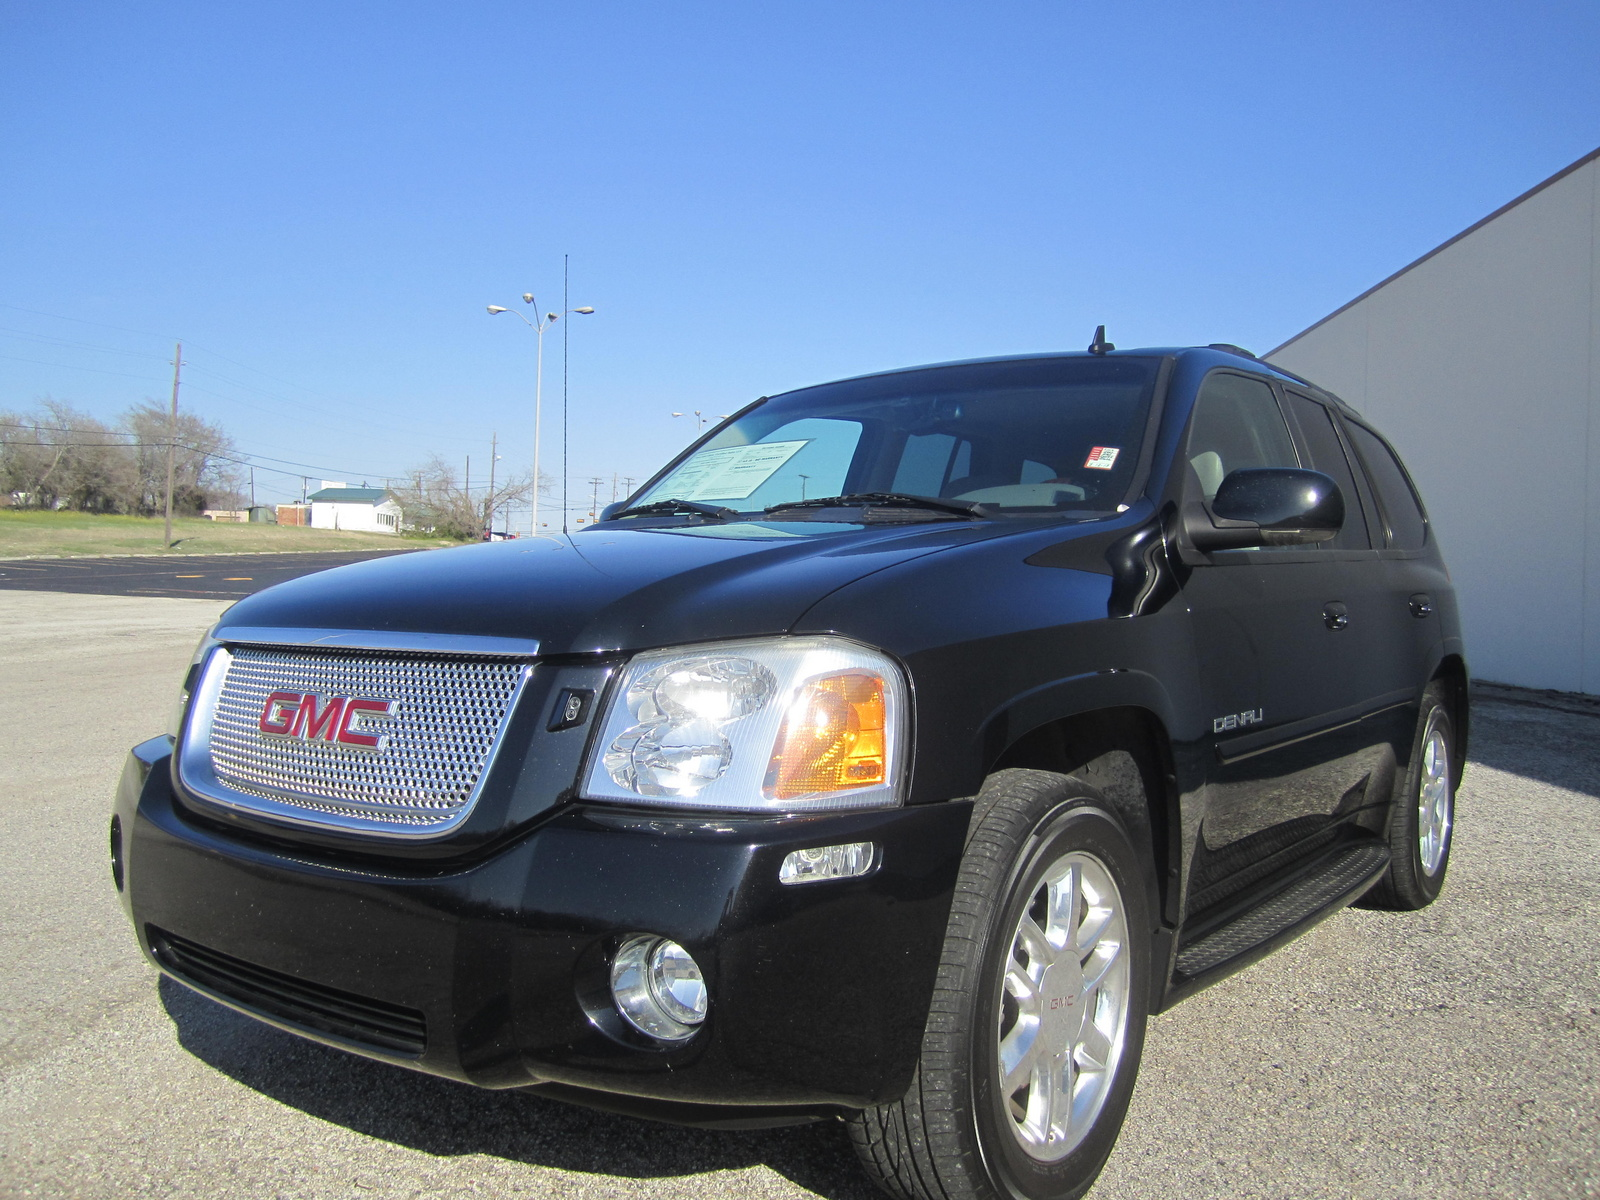 2007 gmc envoy pictures cargurus. Black Bedroom Furniture Sets. Home Design Ideas